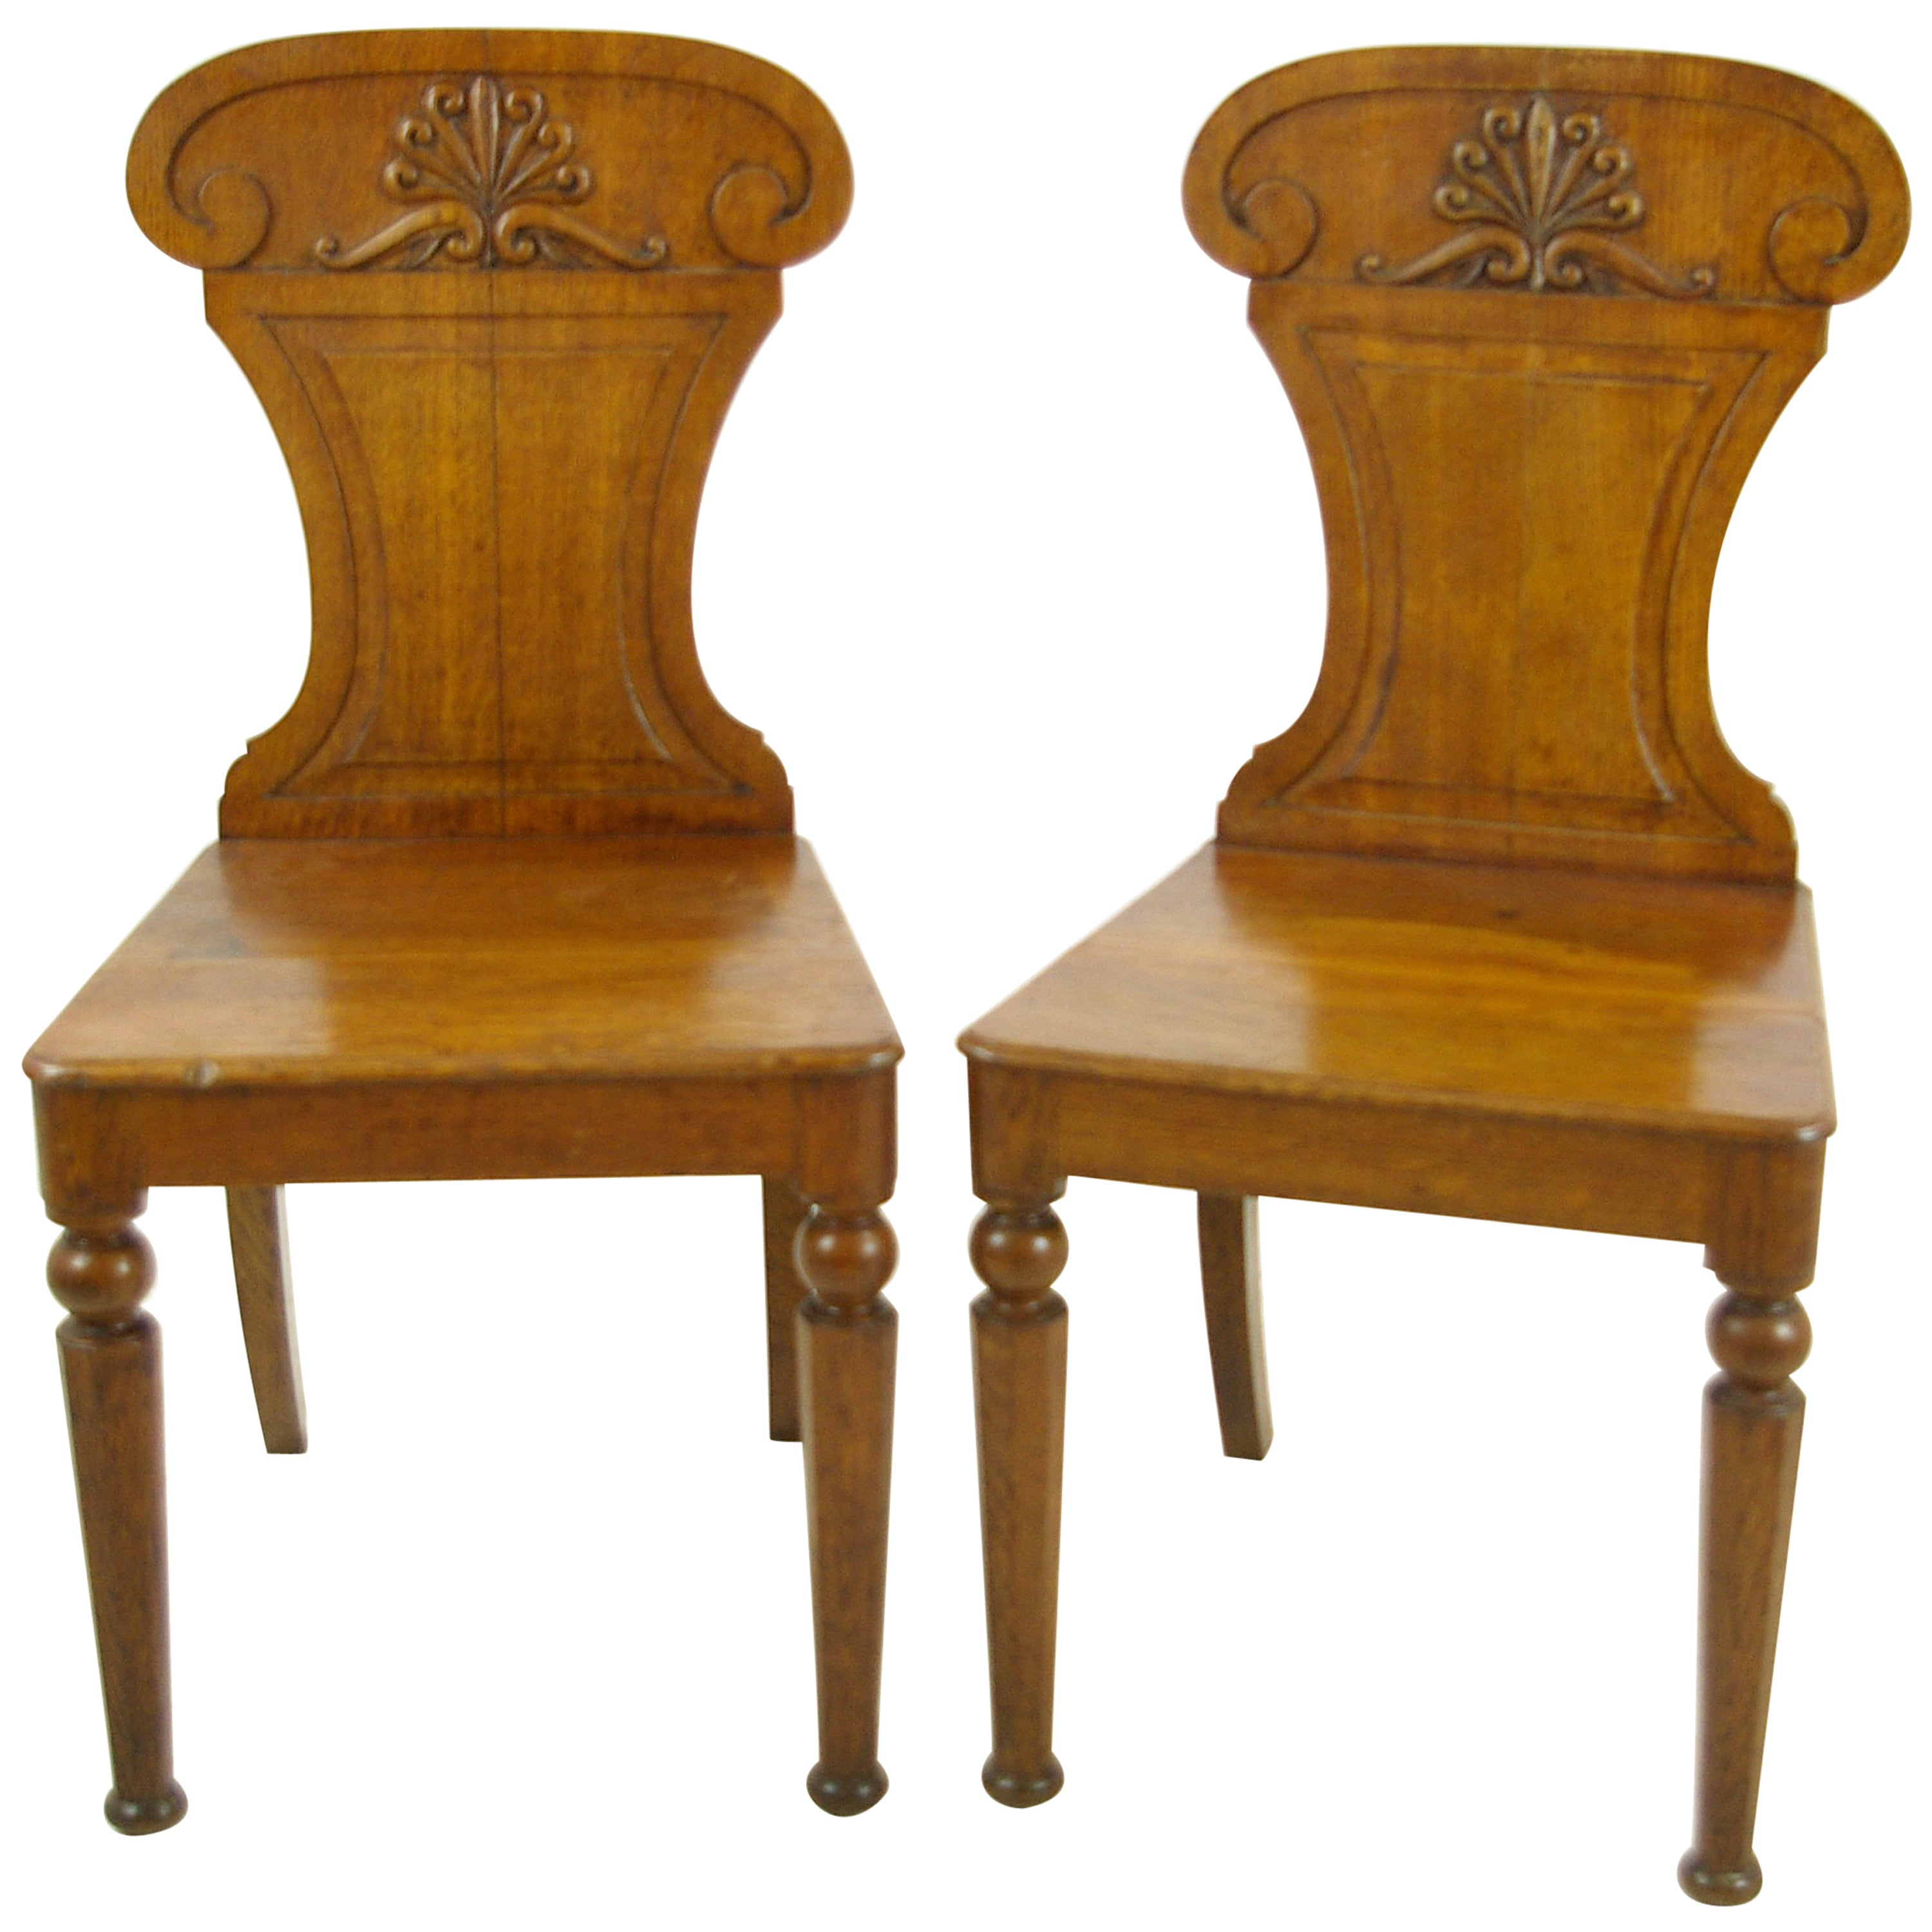 Carved Oak Side Chairs Two Gothic Chairs Scotland 1850 B976 REDUCED!!! at 1stdibs  sc 1 st  1stDibs & Carved Oak Side Chairs Two Gothic Chairs Scotland 1850 B976 ...